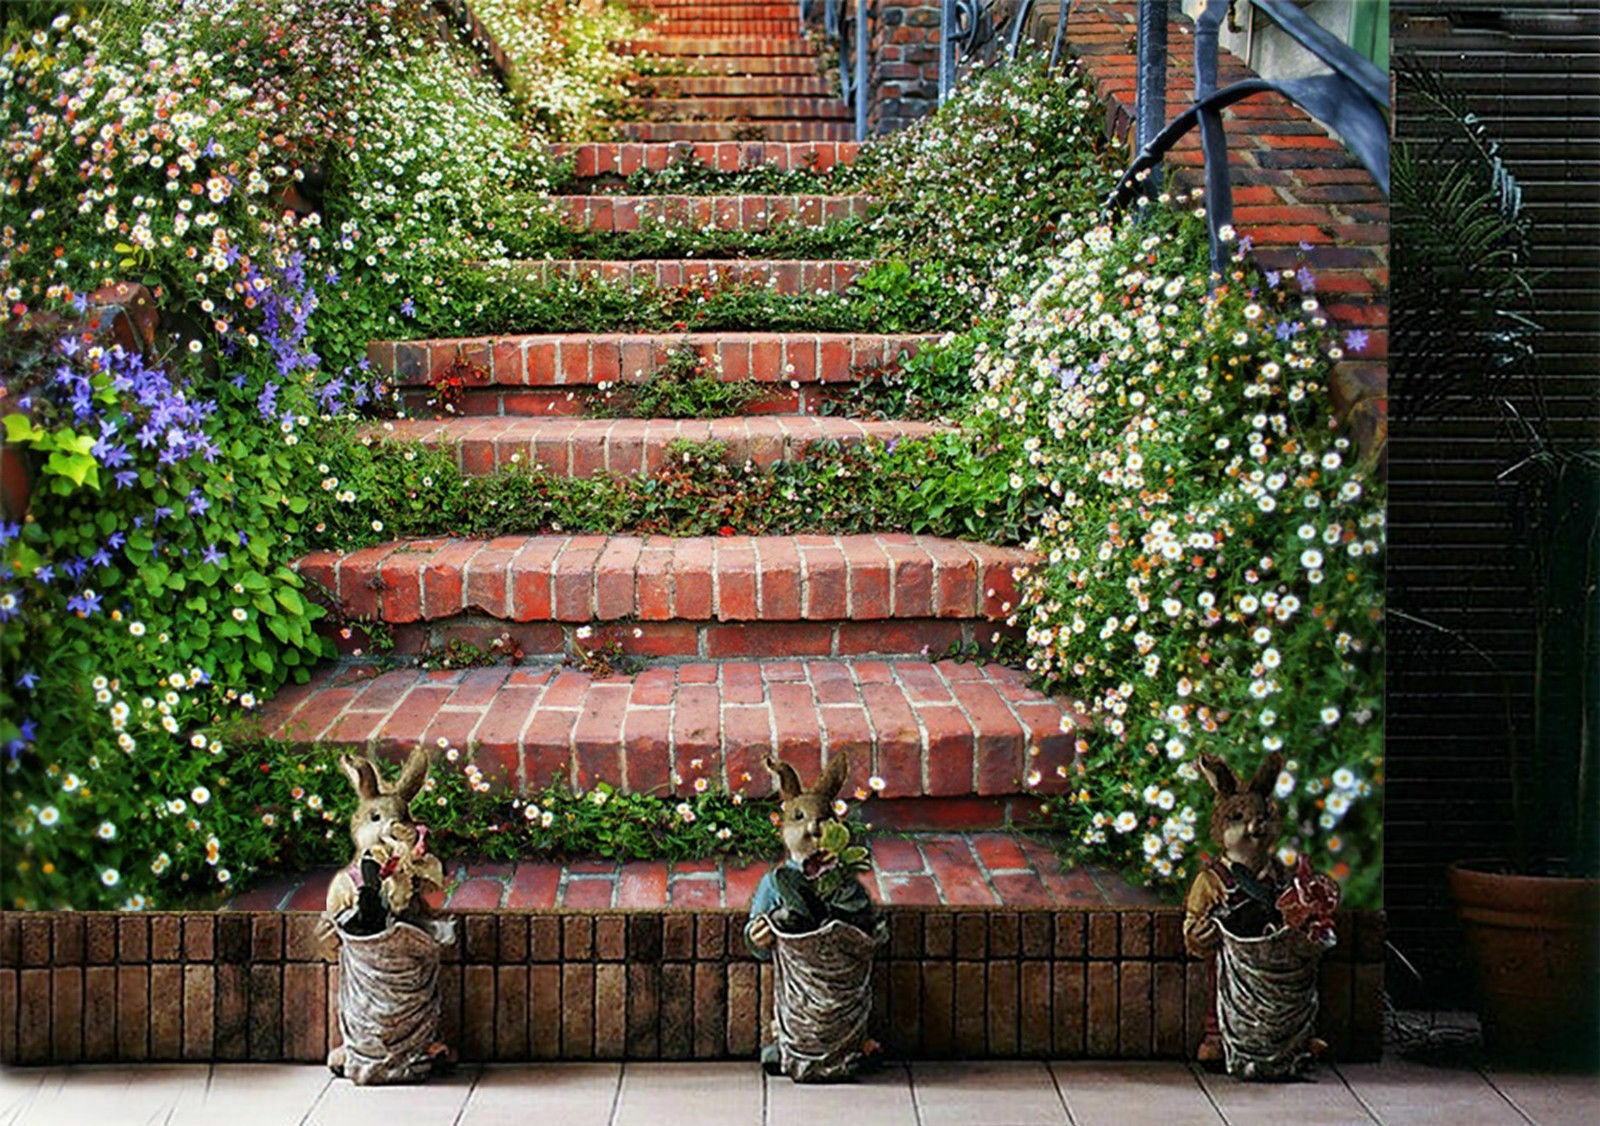 Flower-lined staircase